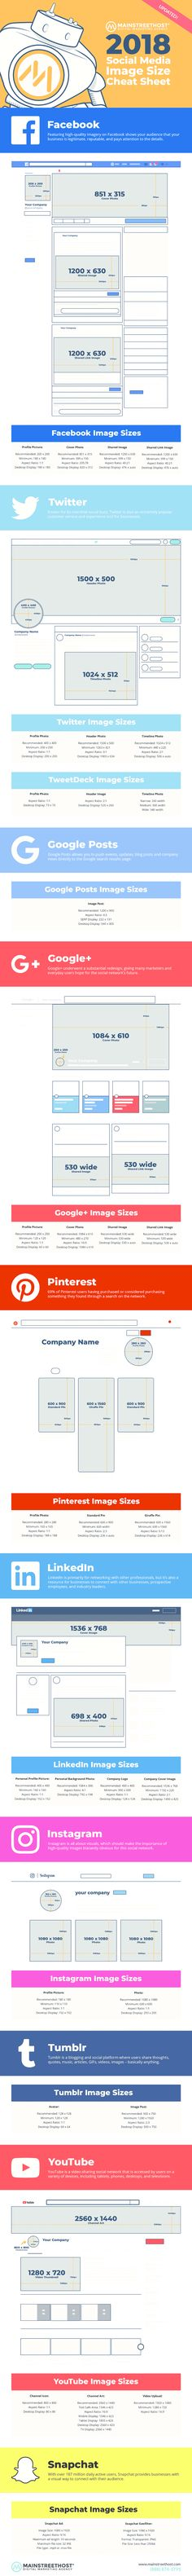 Here's Your Go-To Social Media Image Size Guide - #infographic / Digital Information World